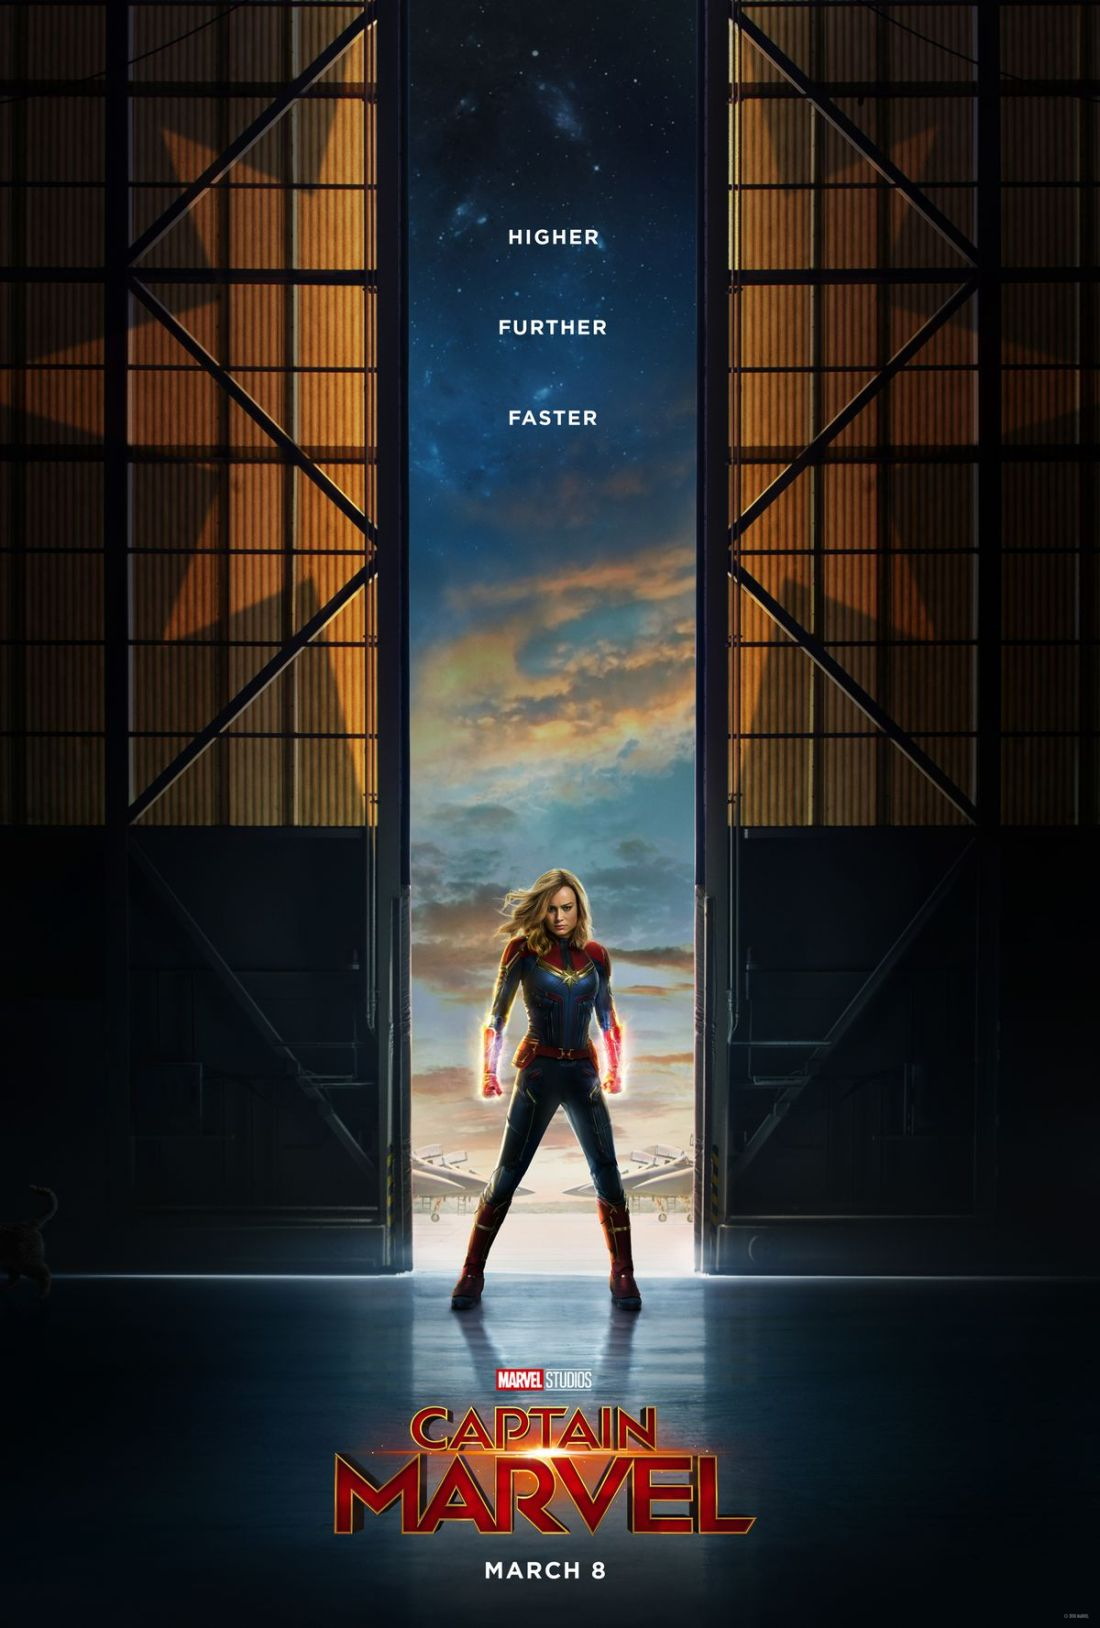 CaptainMarvel_poster_1200x1777